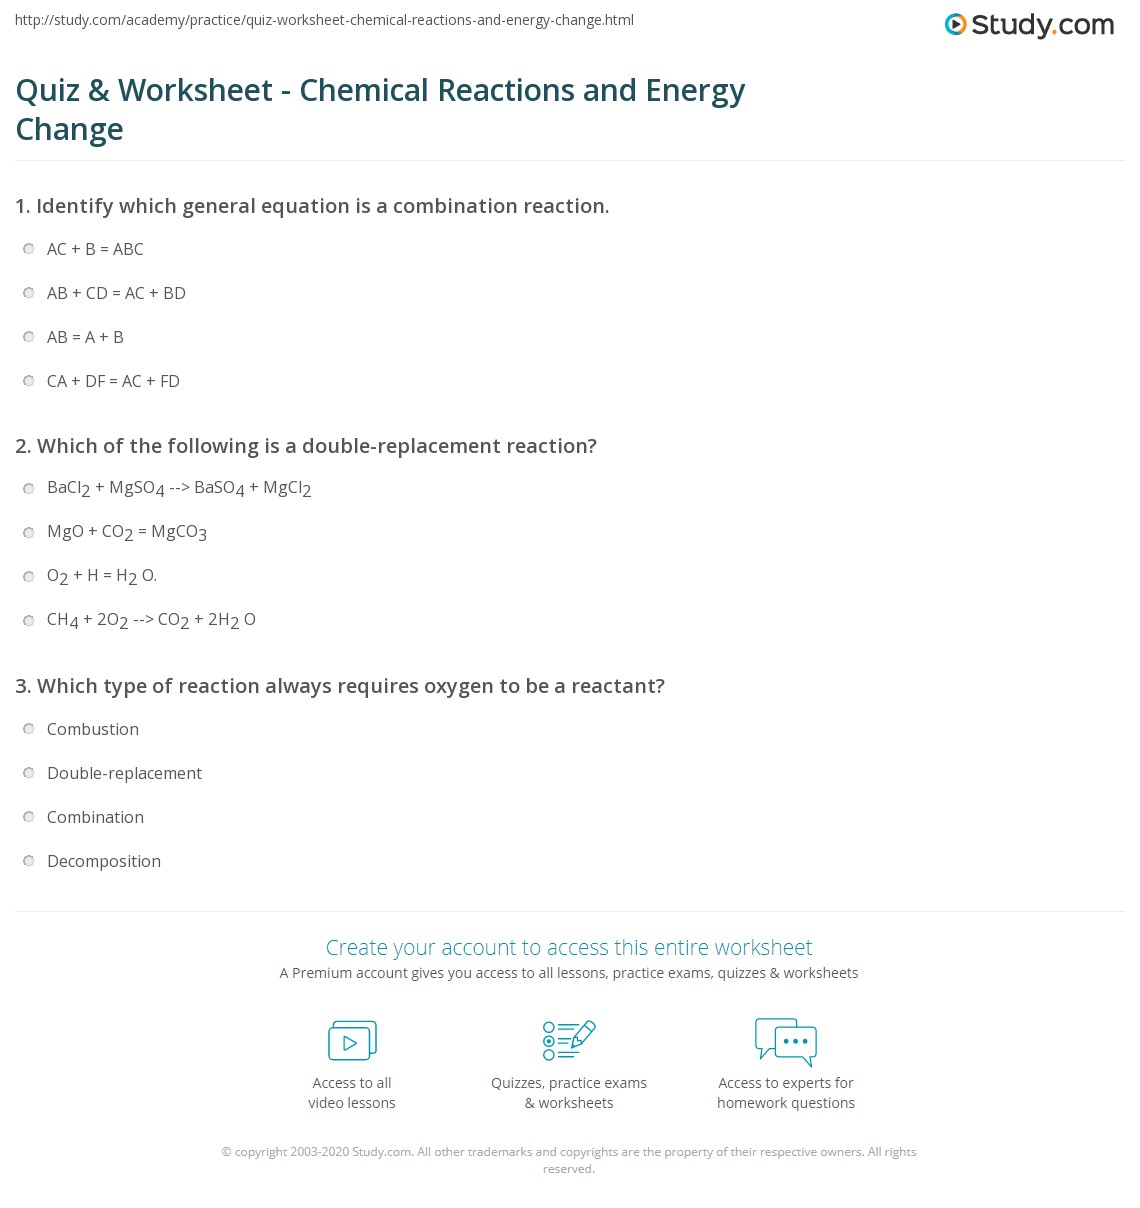 hight resolution of Quiz \u0026 Worksheet - Chemical Reactions and Energy Change   Study.com